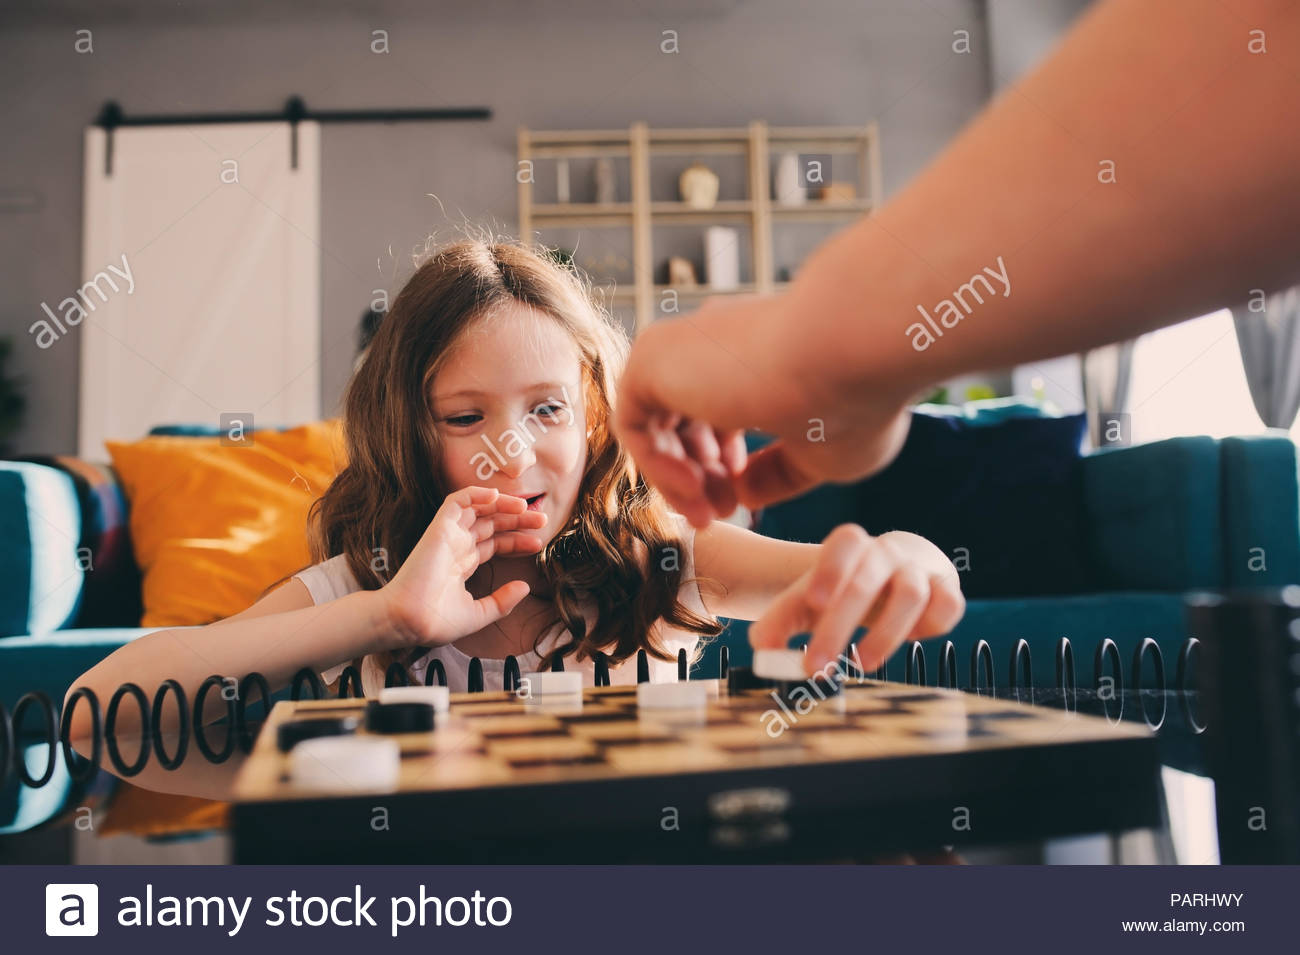 A young girl playing on the table at home - Stock Image